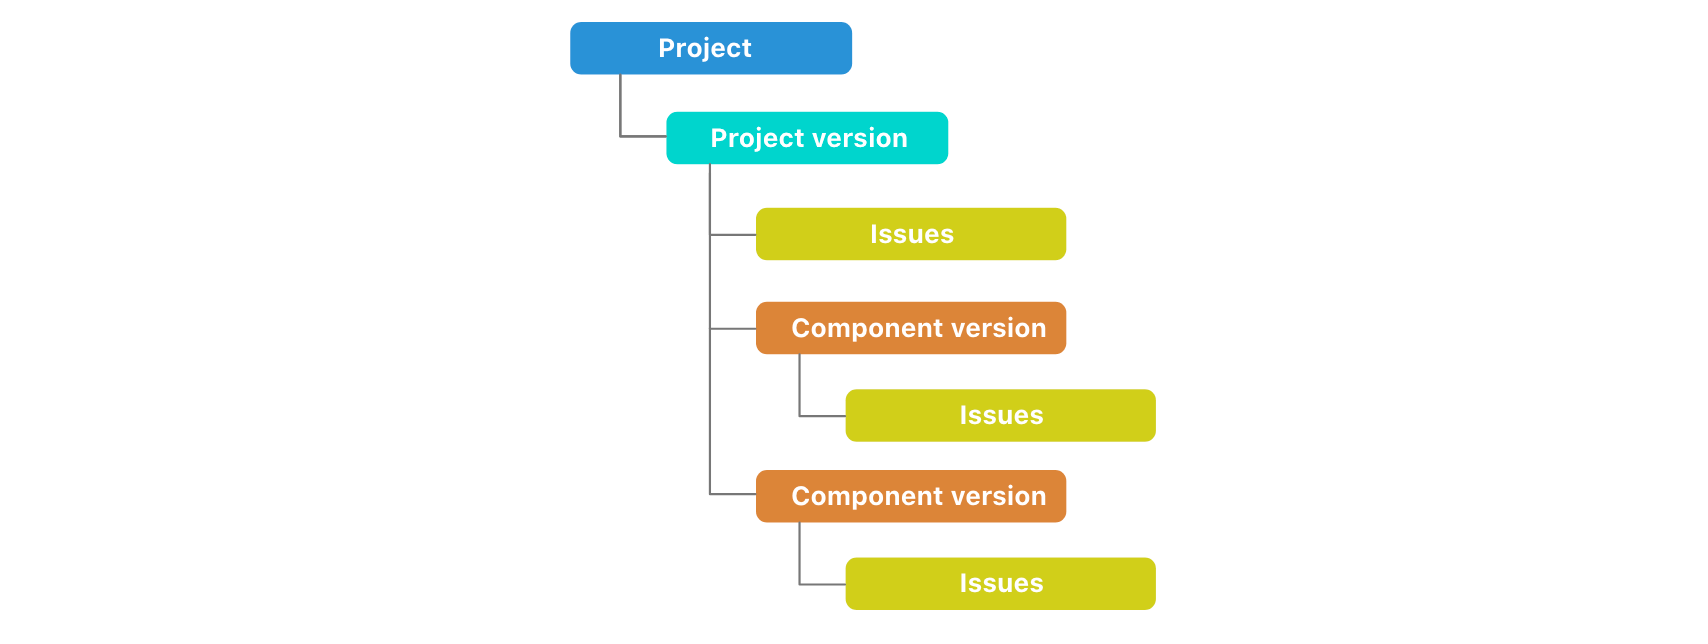 Project and Component release hierarchy.